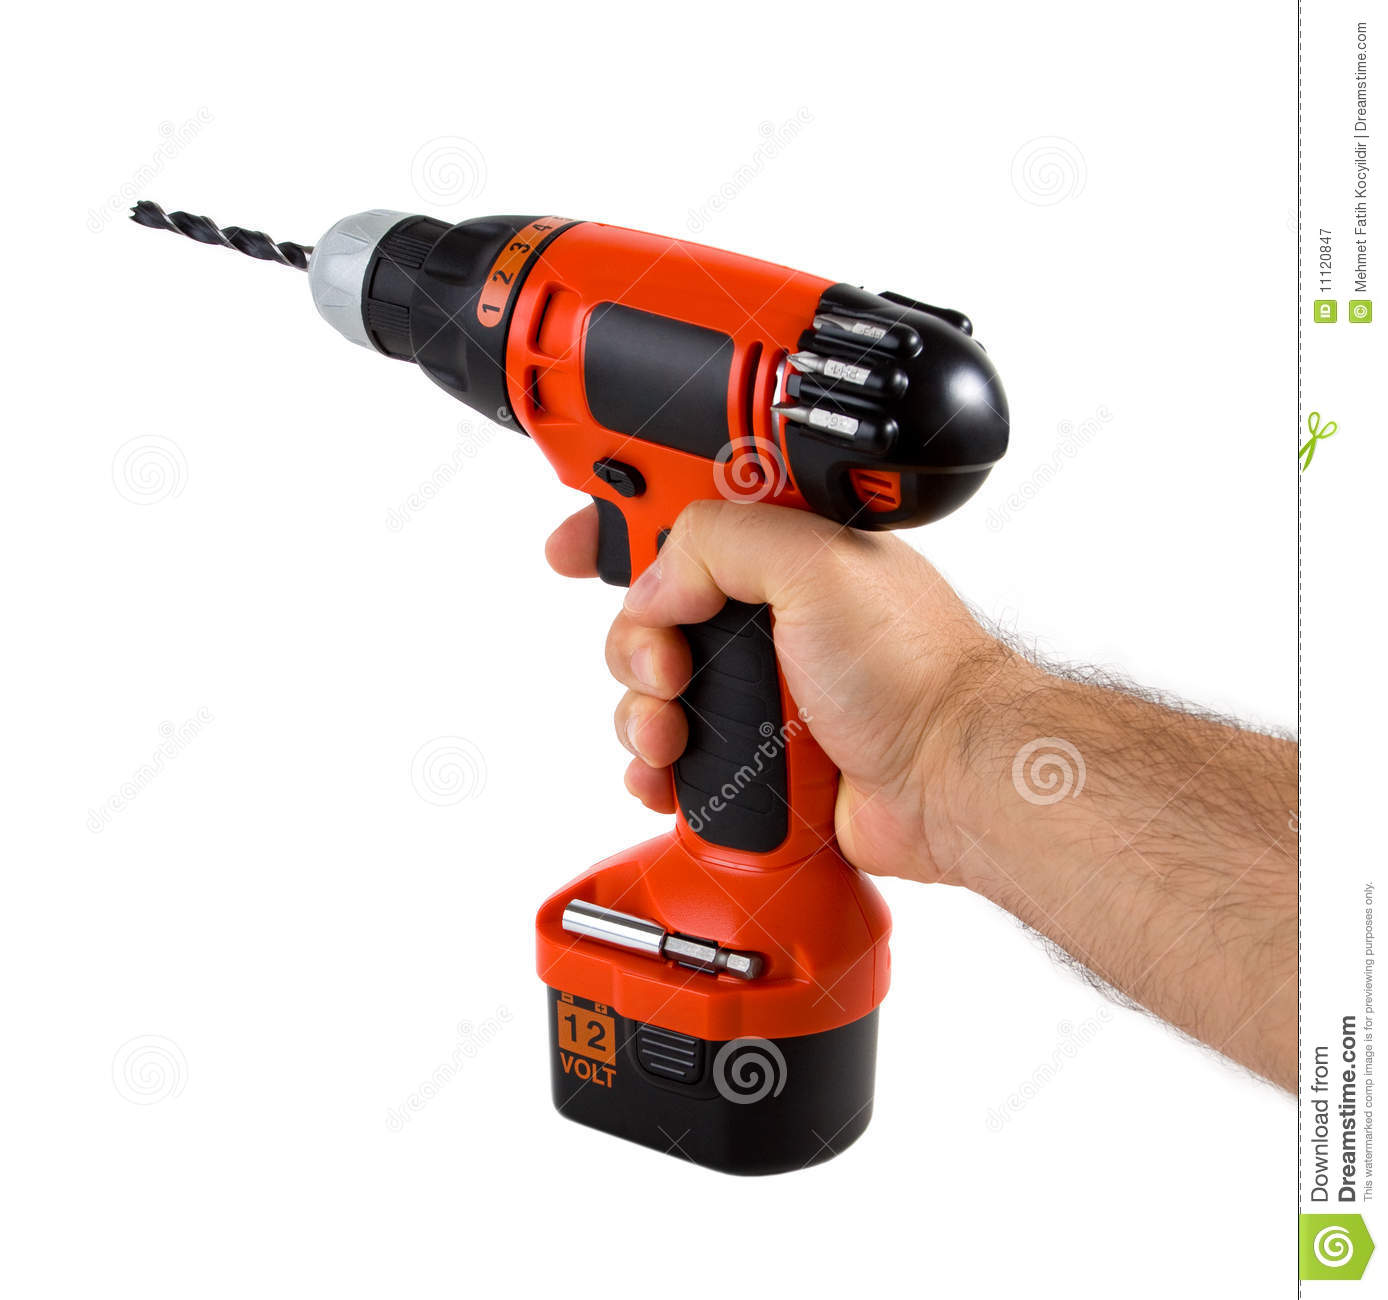 hand holding cordless drill stock image image of power. Black Bedroom Furniture Sets. Home Design Ideas